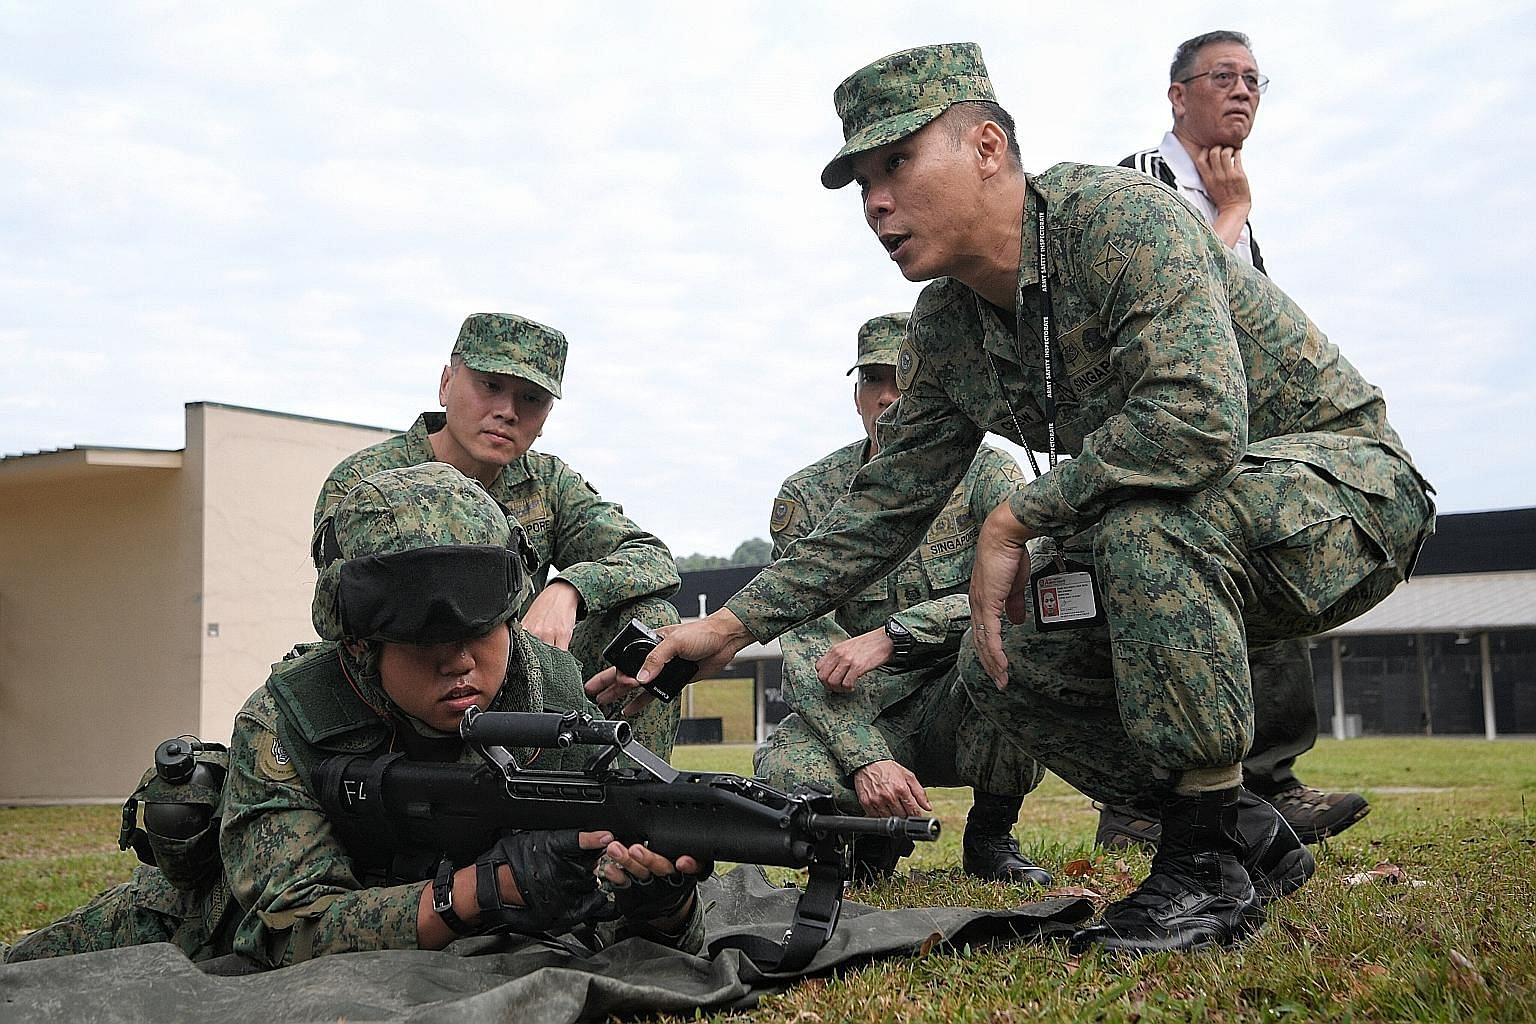 The Army Safety Inspectorate's Major Simon Chew (at right) carrying out an inspection observed by Singapore Armed Forces Inspector-General Tan Chee Wee (far left, behind) at Pasir Laba Camp on Thursday.